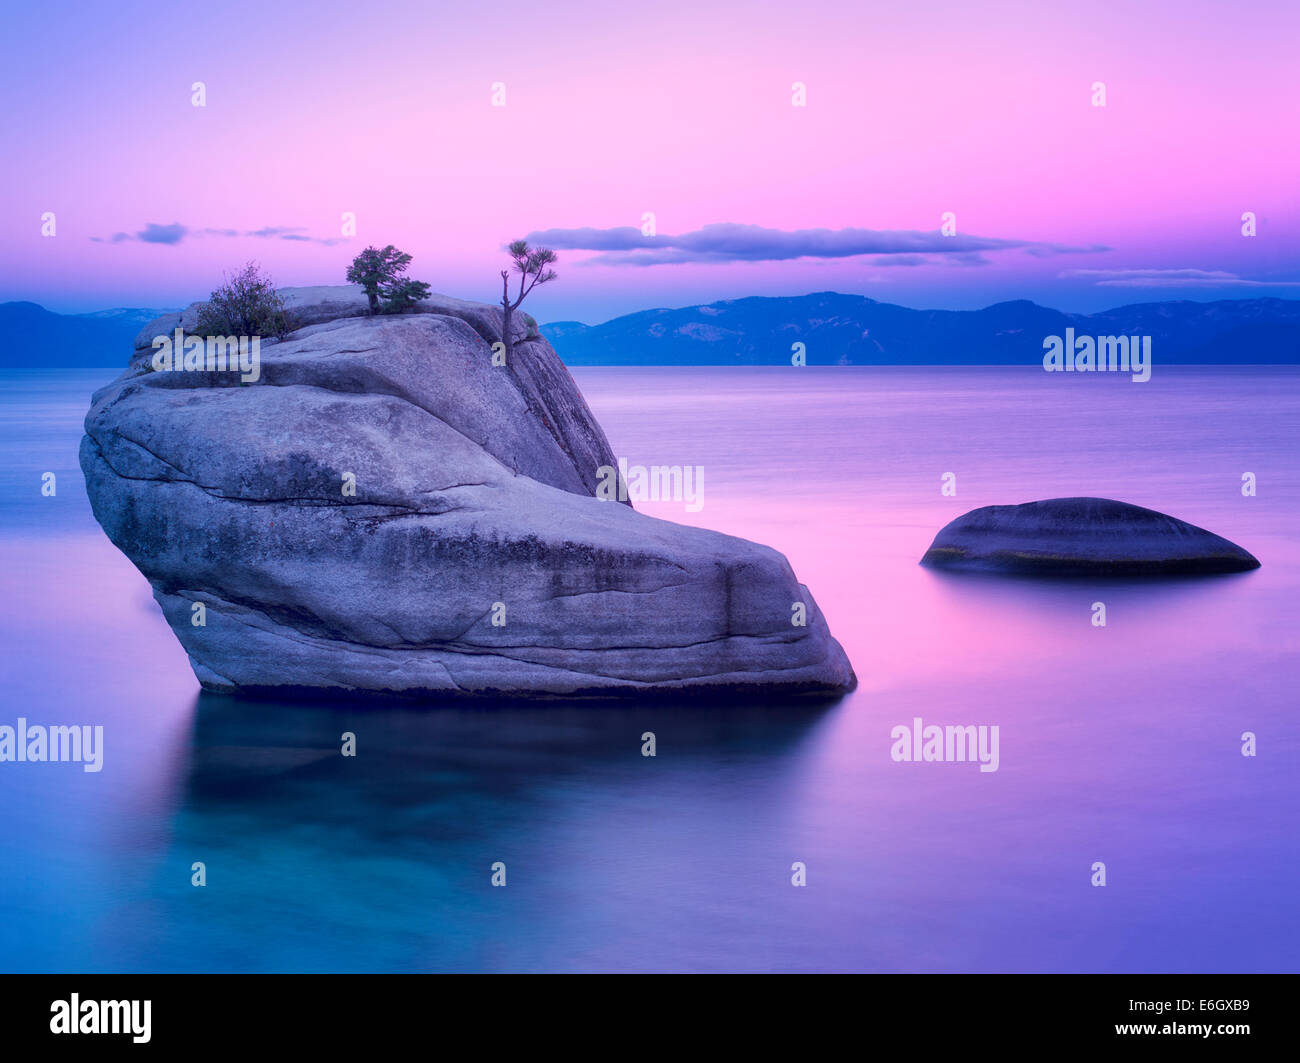 Bonsai-Rock bei Sonnenaufgang. Lake Tahoe, Nevada Stockbild